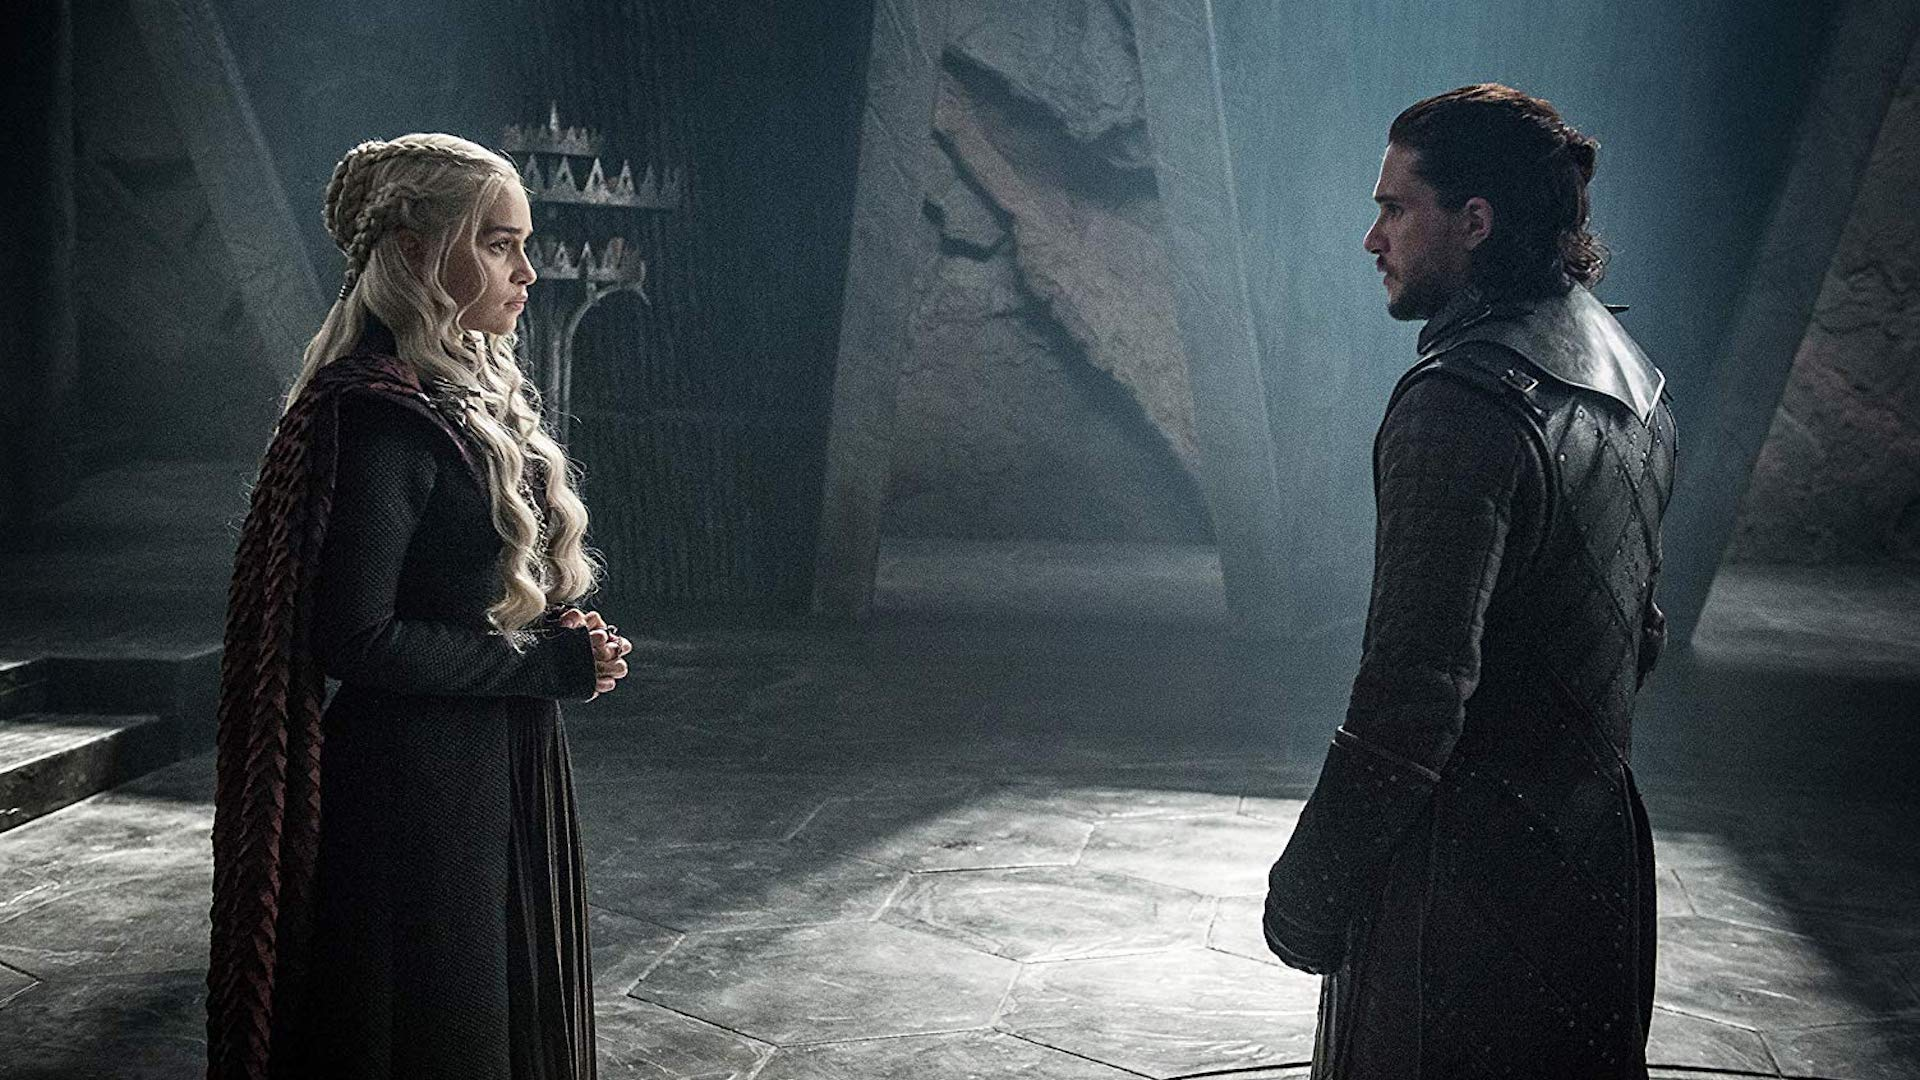 A New Game Of Thrones Season 8 Teaser Is All About How It Ends